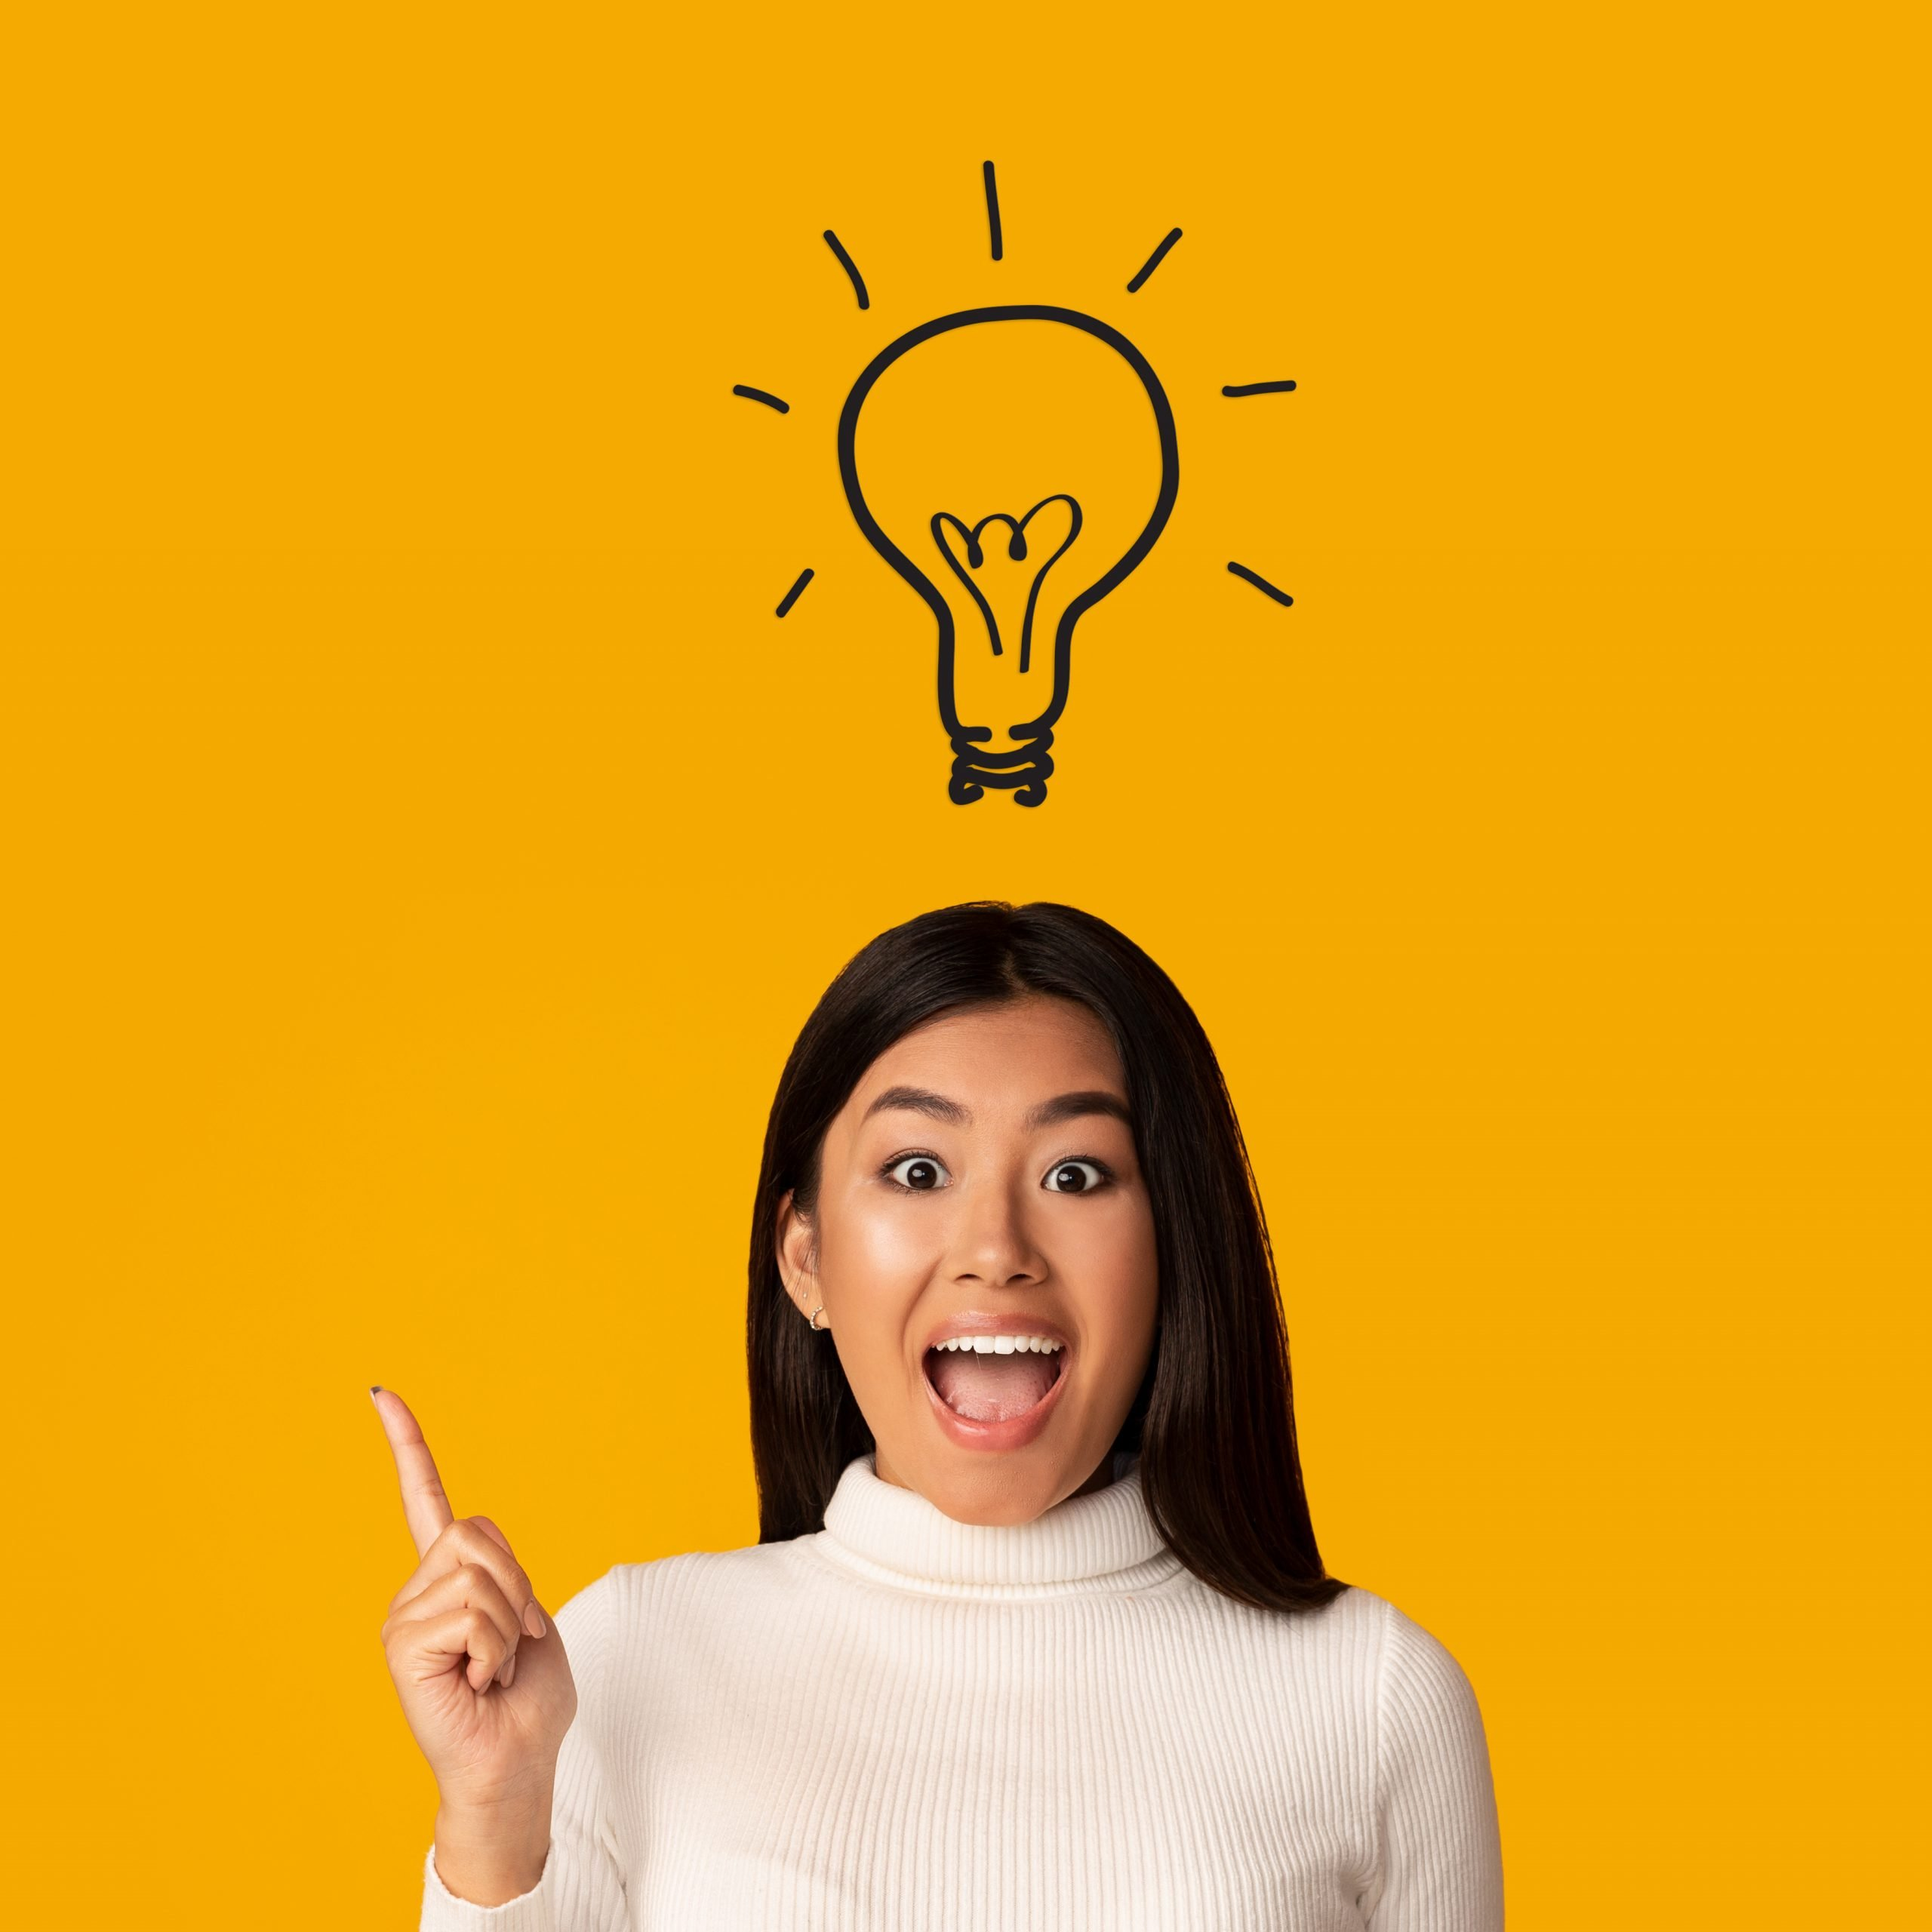 Smiling, young, brown woman with idea lightbulb above her head, on a bright yellow background